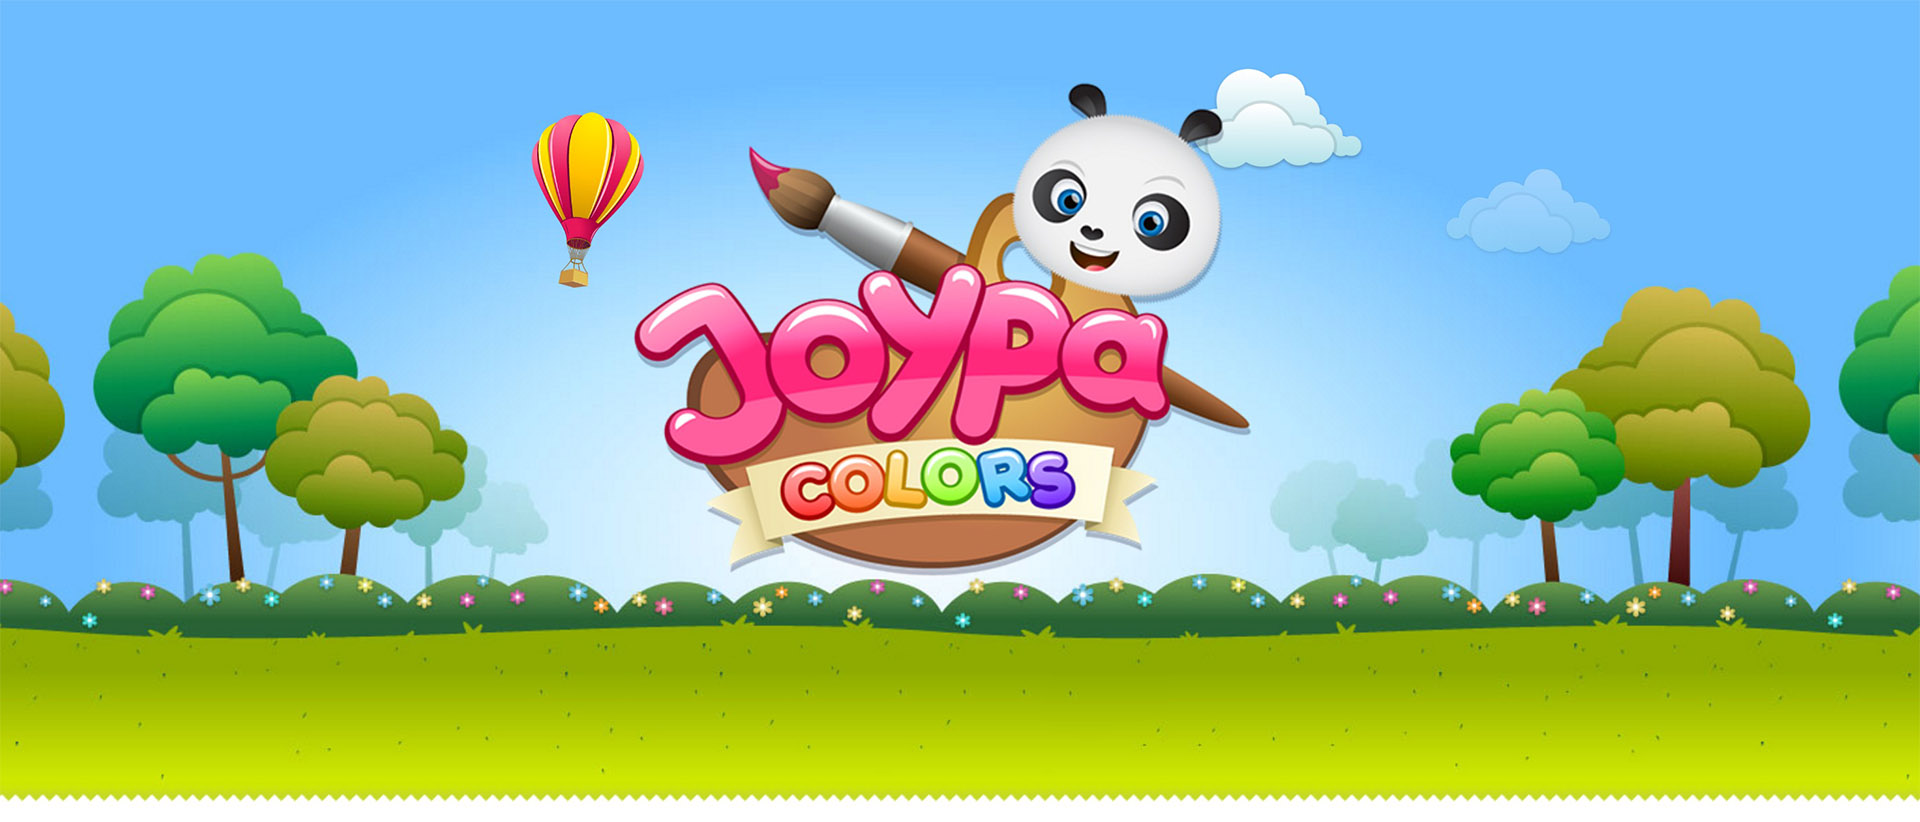 Joypa Colors